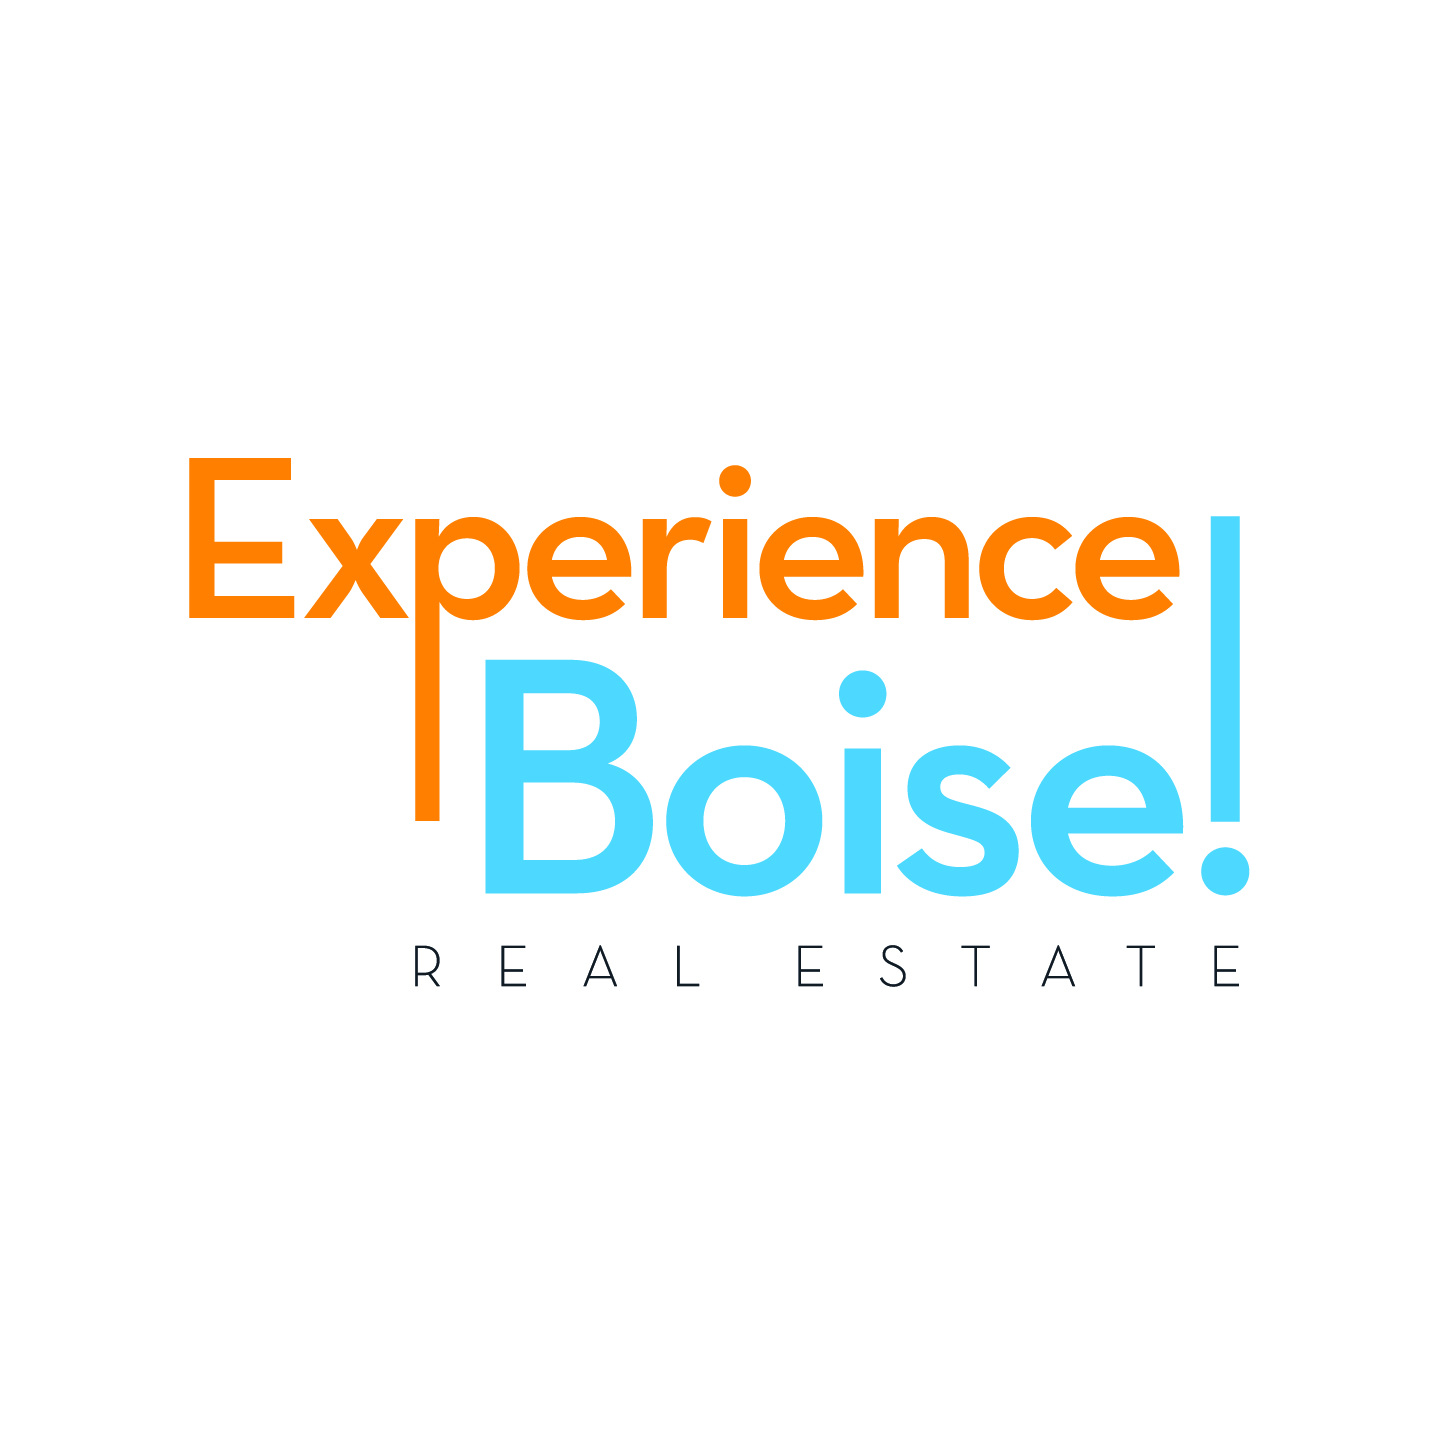 Experience Boise! Real Estate